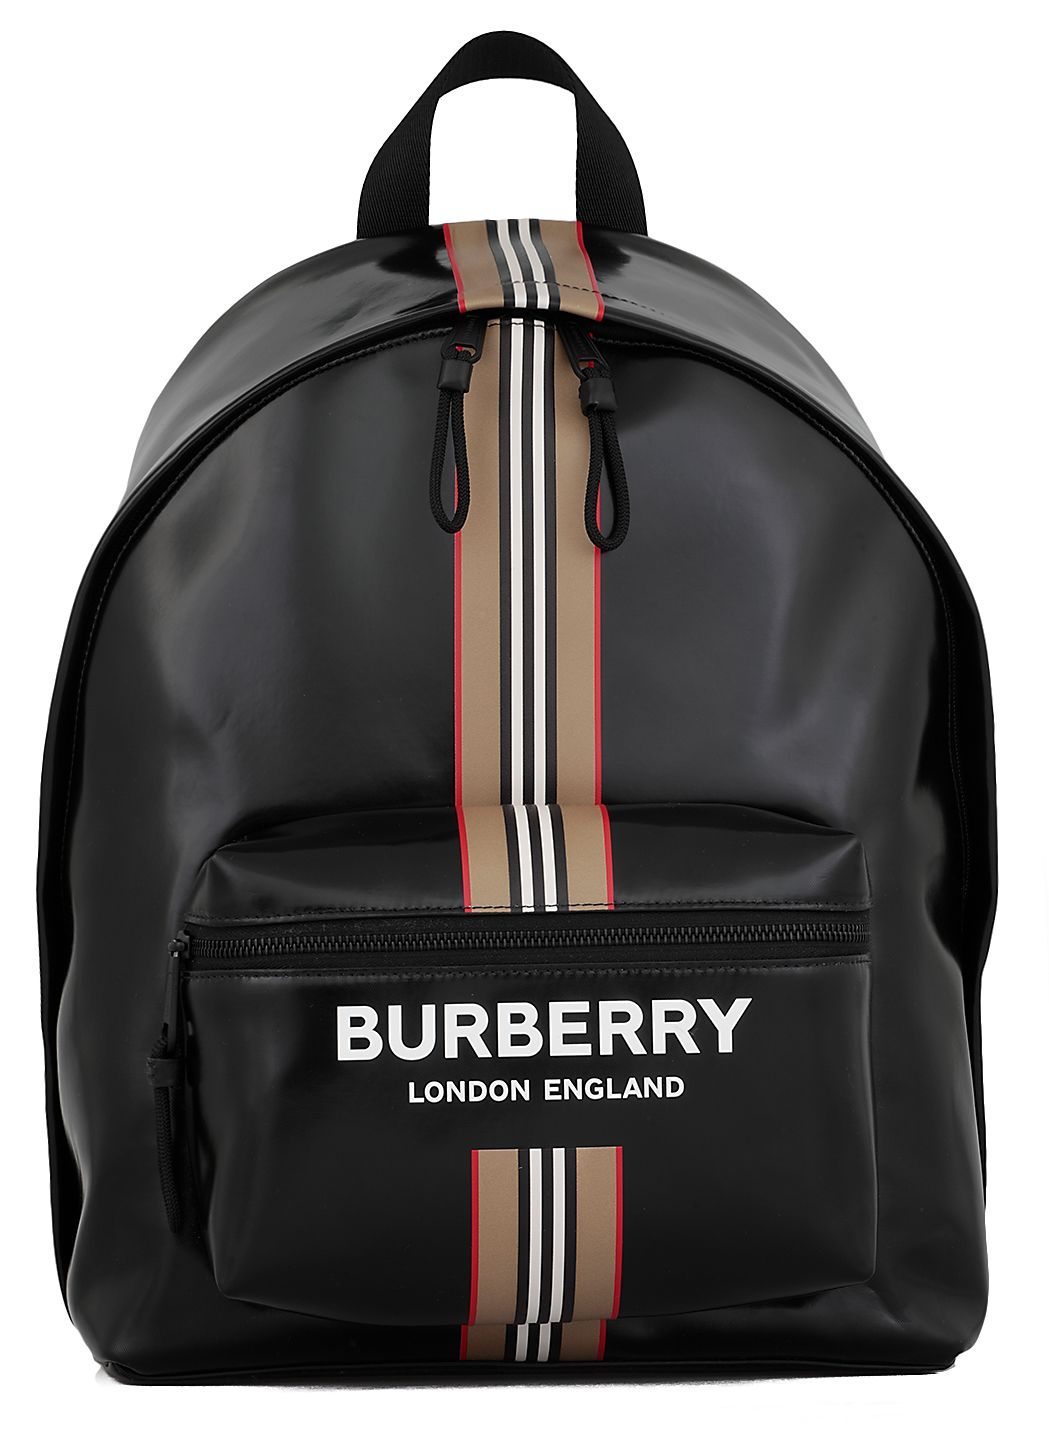 Patent coated canvas backpack